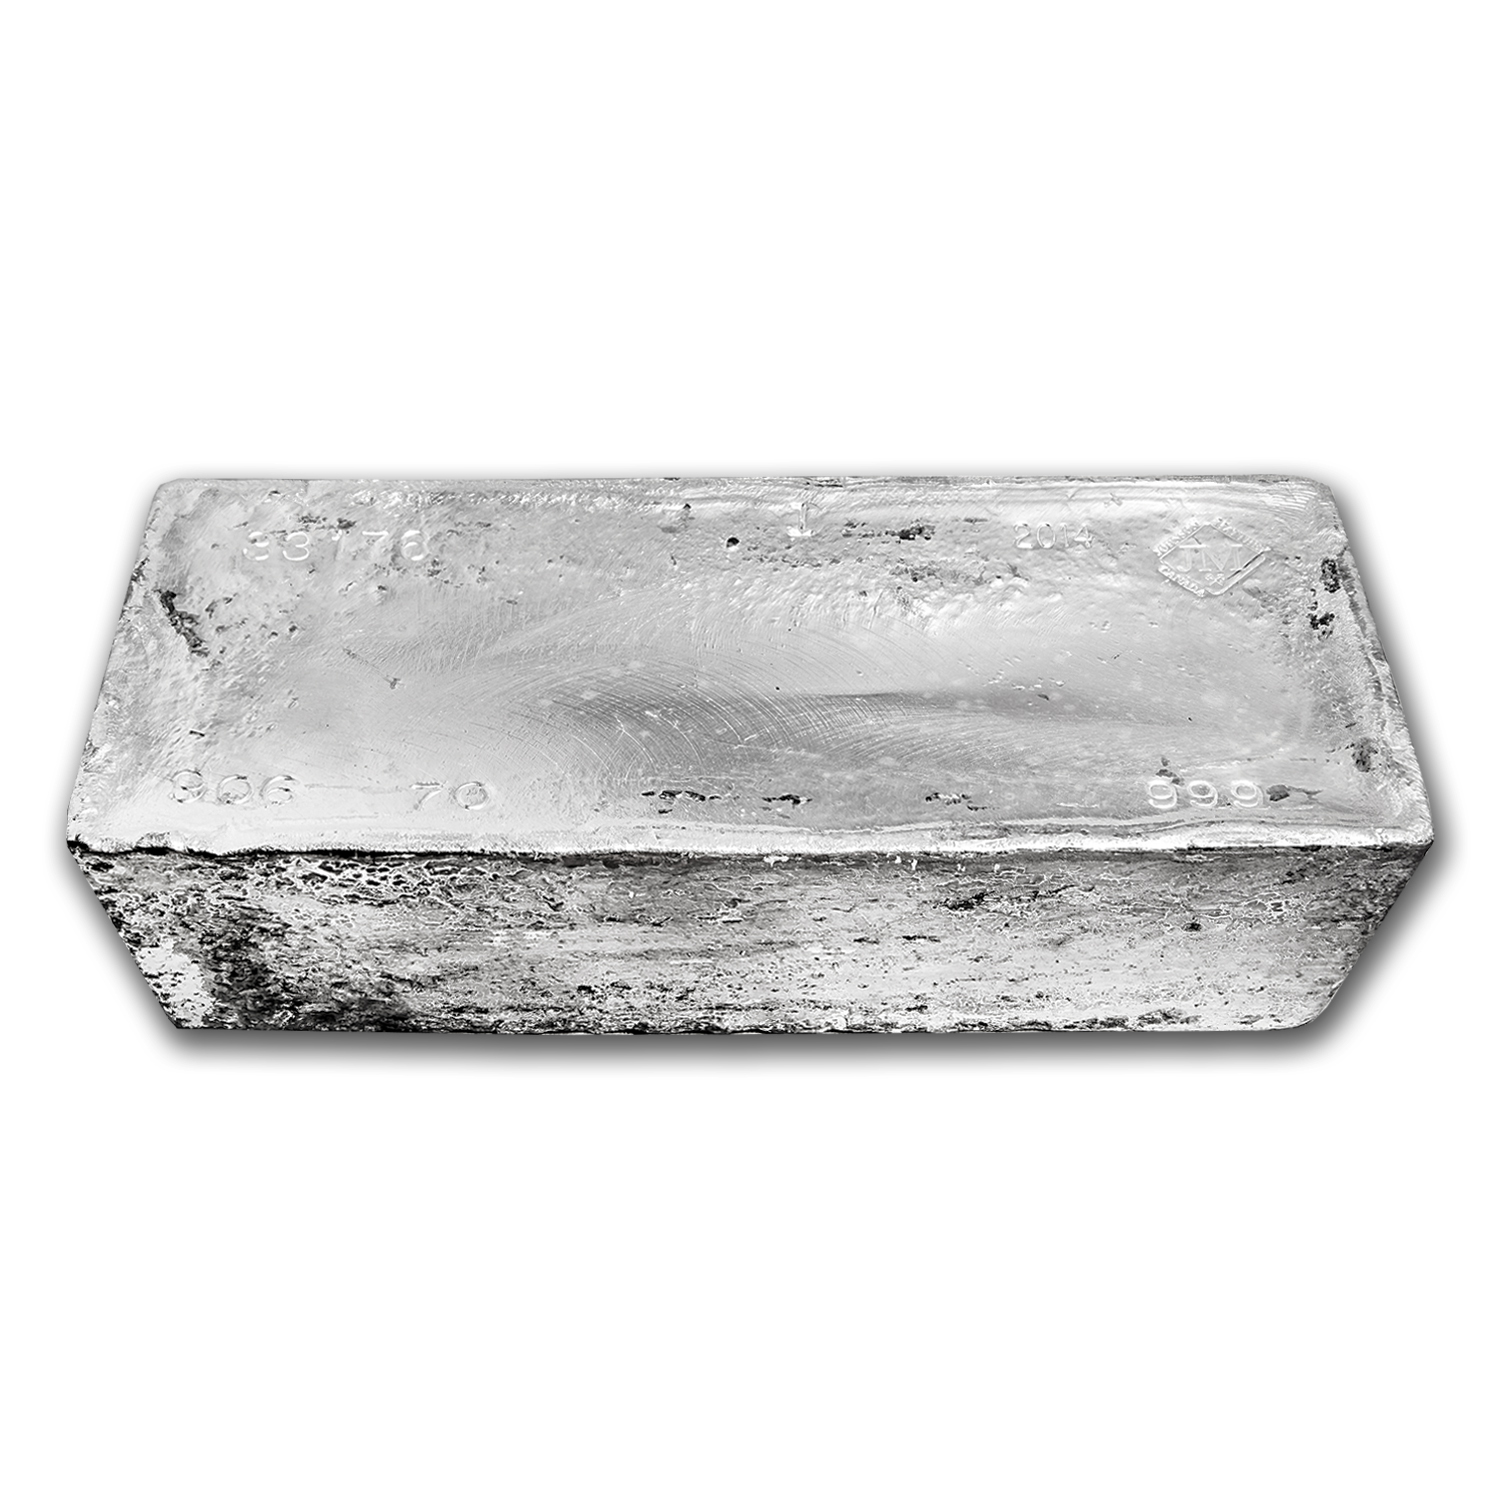 1015.60 oz Silver Bars - Johnson Matthey